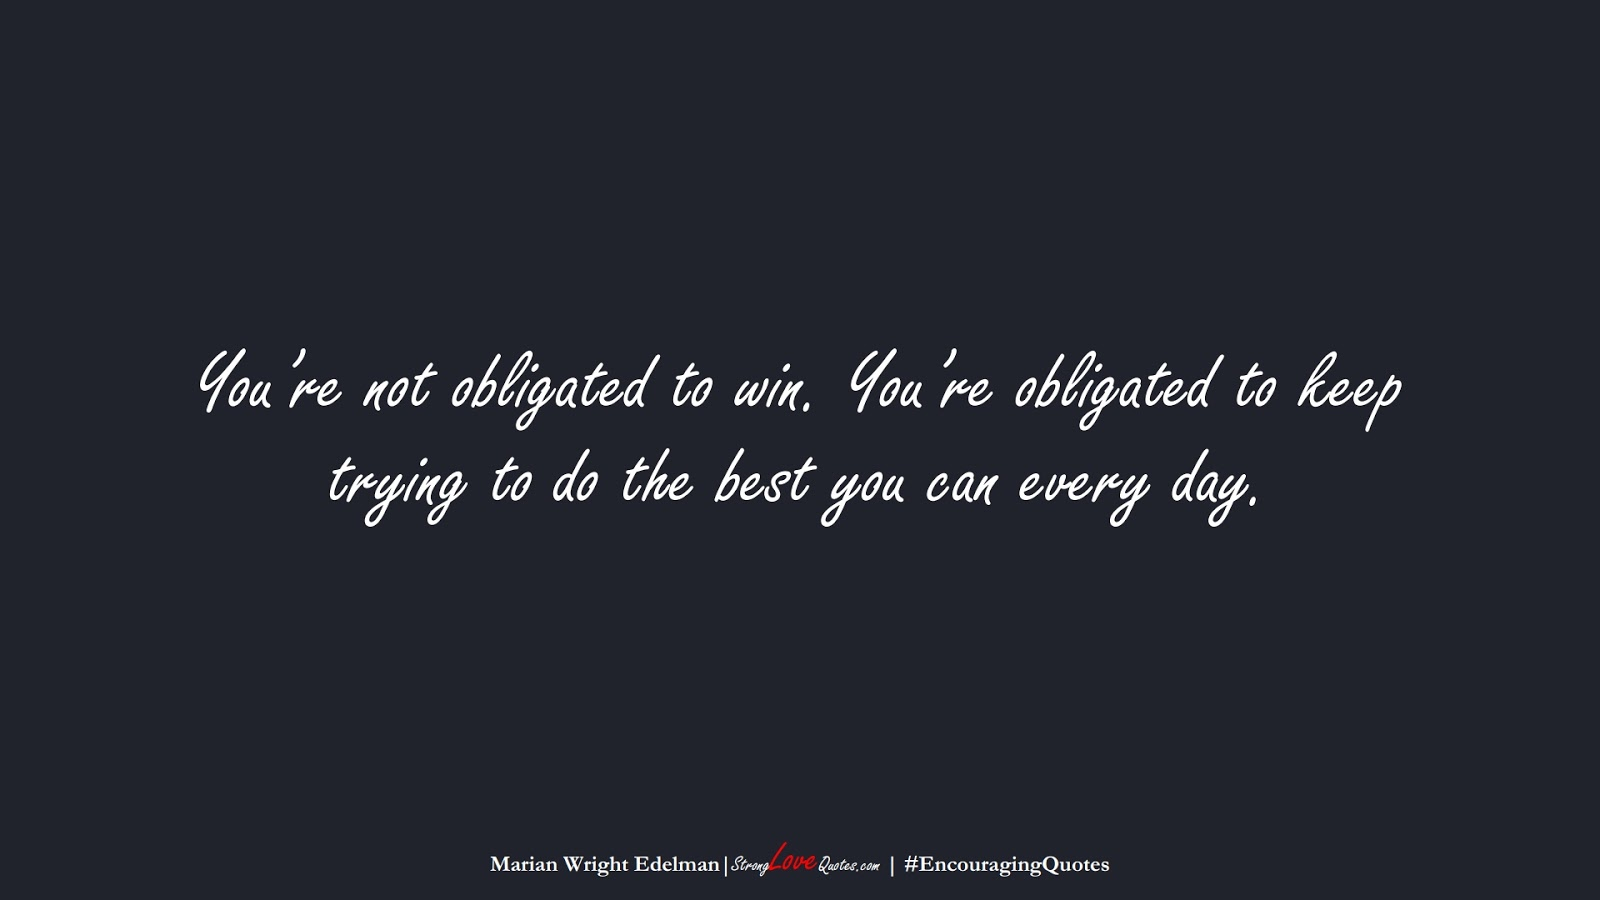 You're not obligated to win. You're obligated to keep trying to do the best you can every day. (Marian Wright Edelman);  #EncouragingQuotes